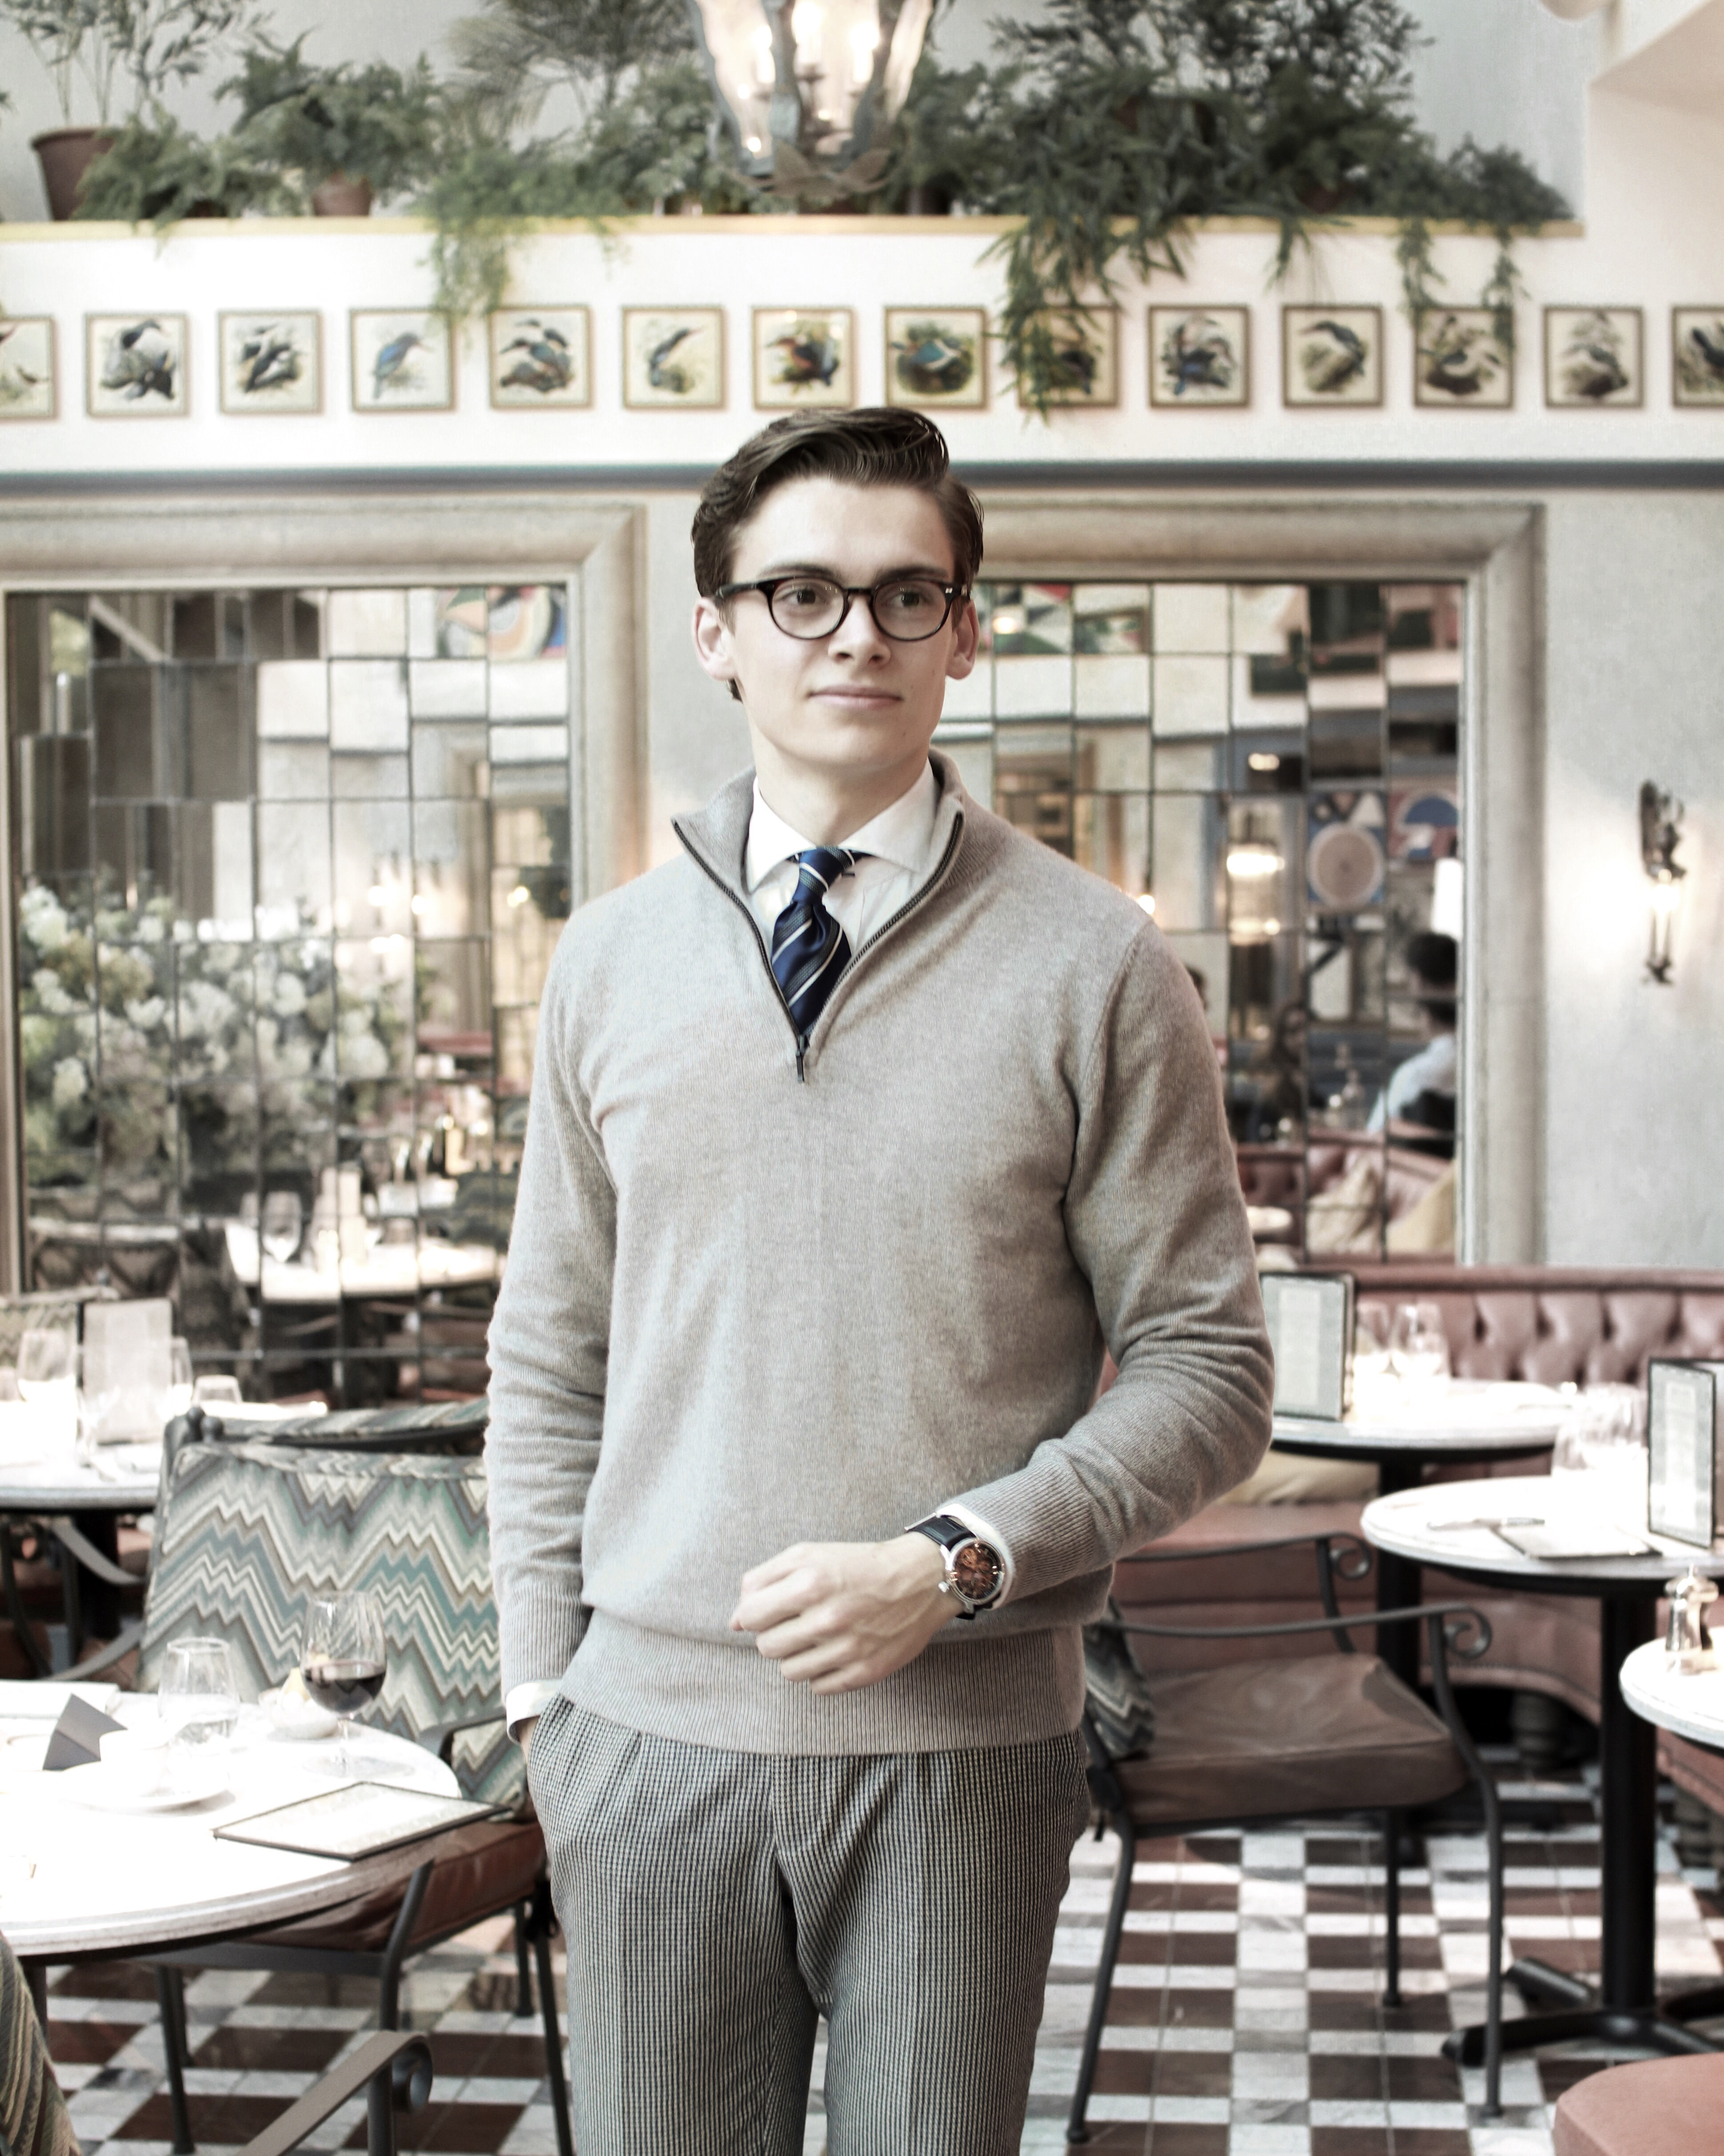 the ivy tower bridge london restaurant luxury gentleman blogger tie smart casual